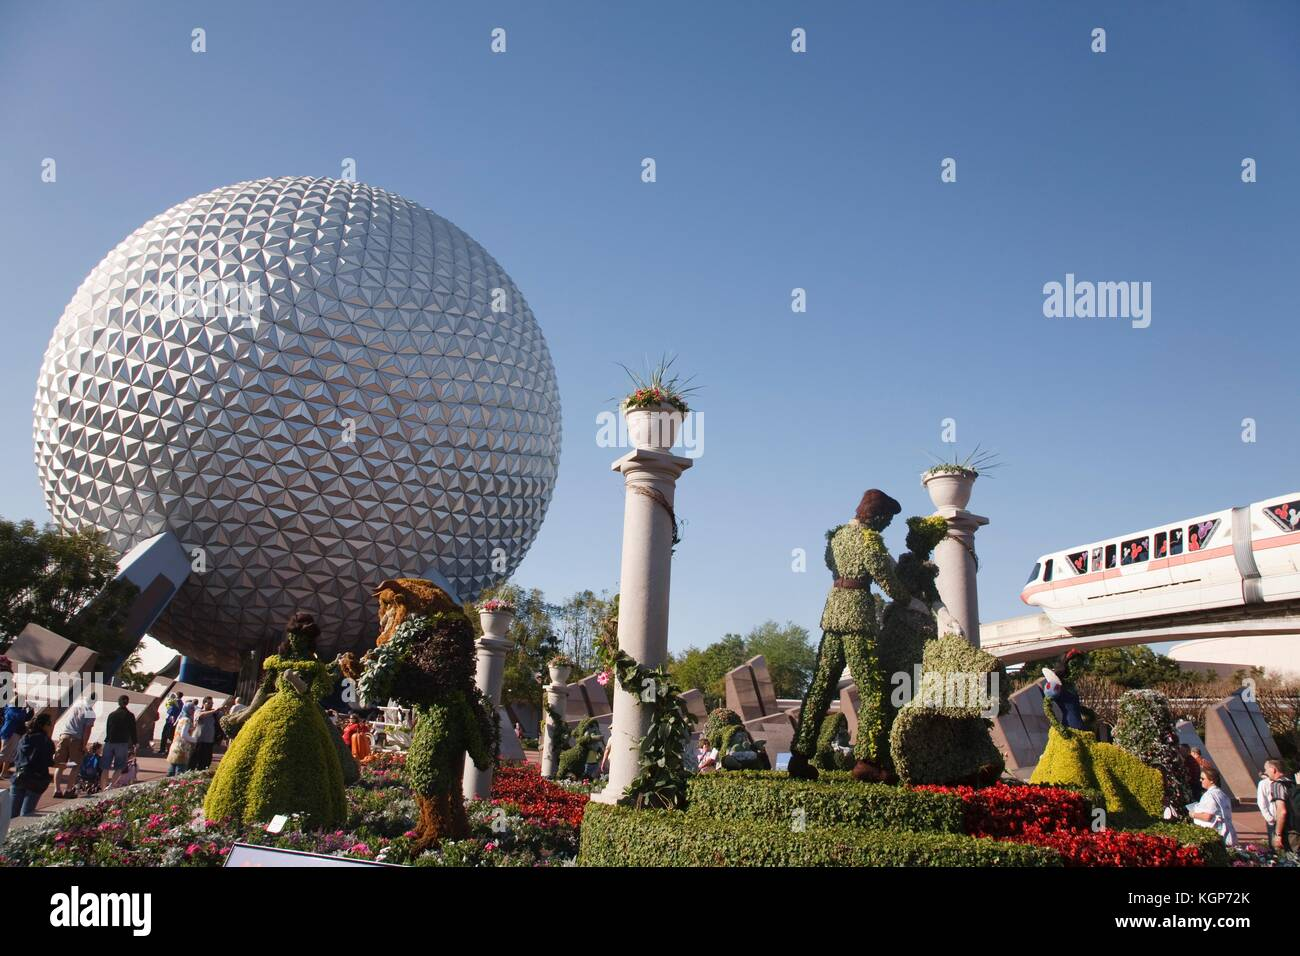 Topiary Disney characters and the Spaceship Earth globe at the Epcot Center, Disneyworld - Stock Image